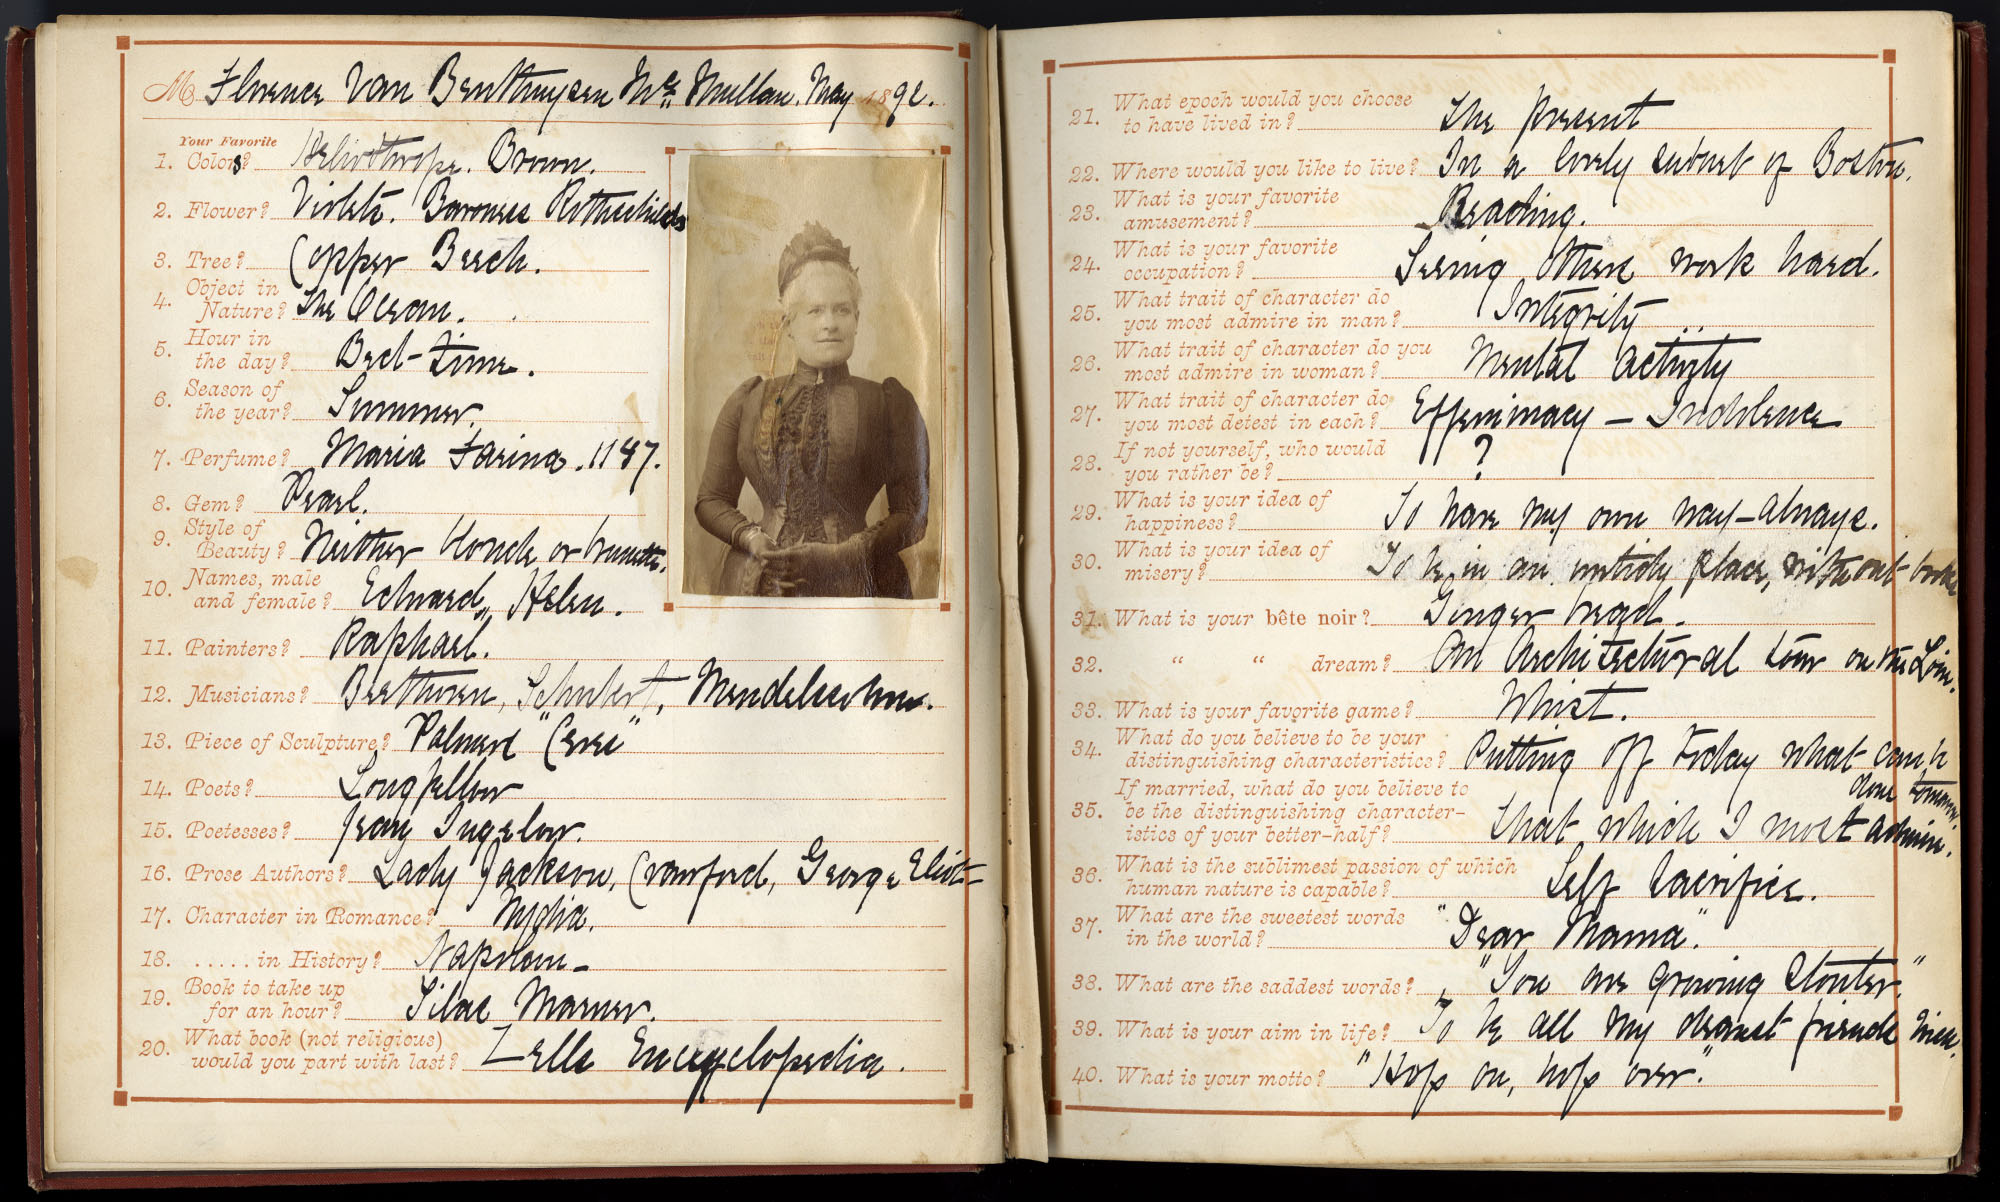 Mental Photographs: An Album for Tastes, Habits, and Convictions (New York, 1890). Gift of Todd and Sharon Pattison.